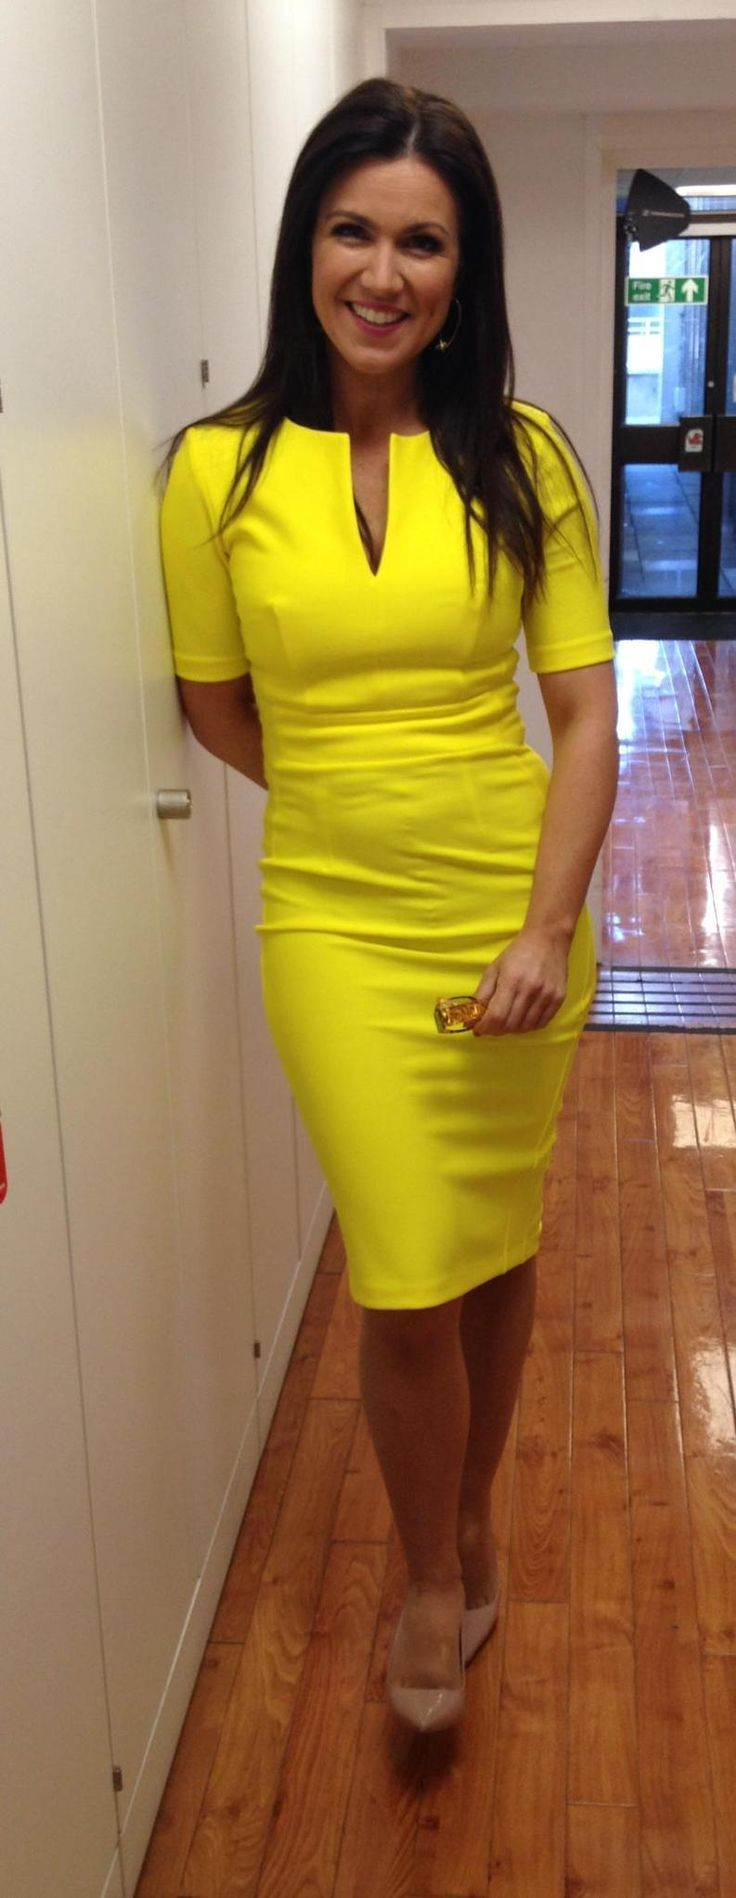 Susanna Reid wearing the Yasmin dress in Blazing Yellow on GMB #beautiful #DivaCatwalk #GMB